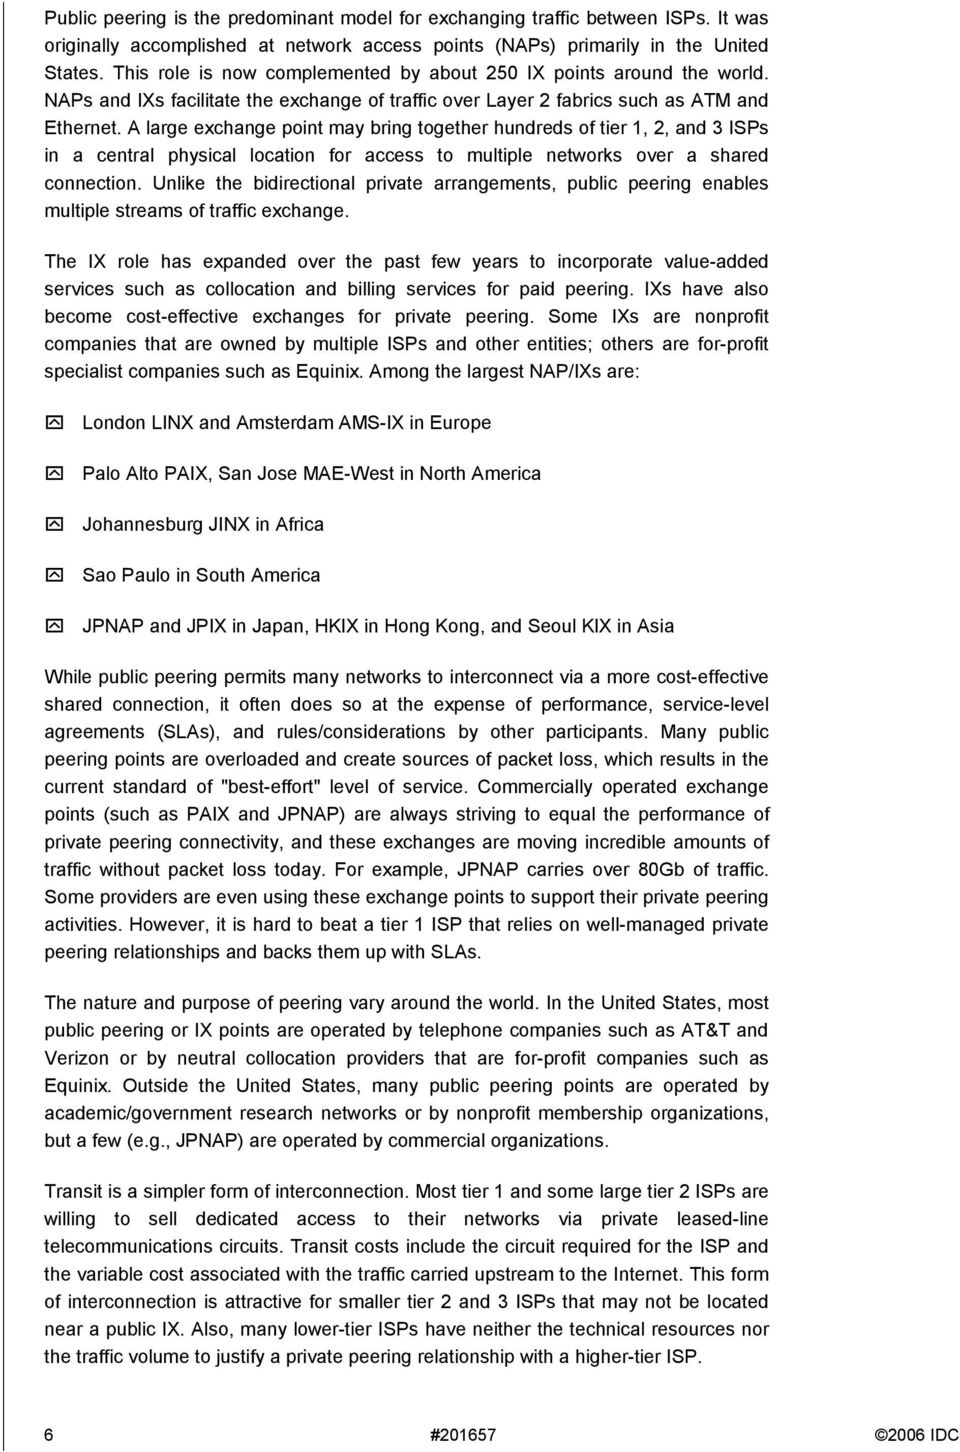 A large exchange point may bring together hundreds of tier 1, 2, and 3 s in a central physical location for access to multiple networks over a shared connection.